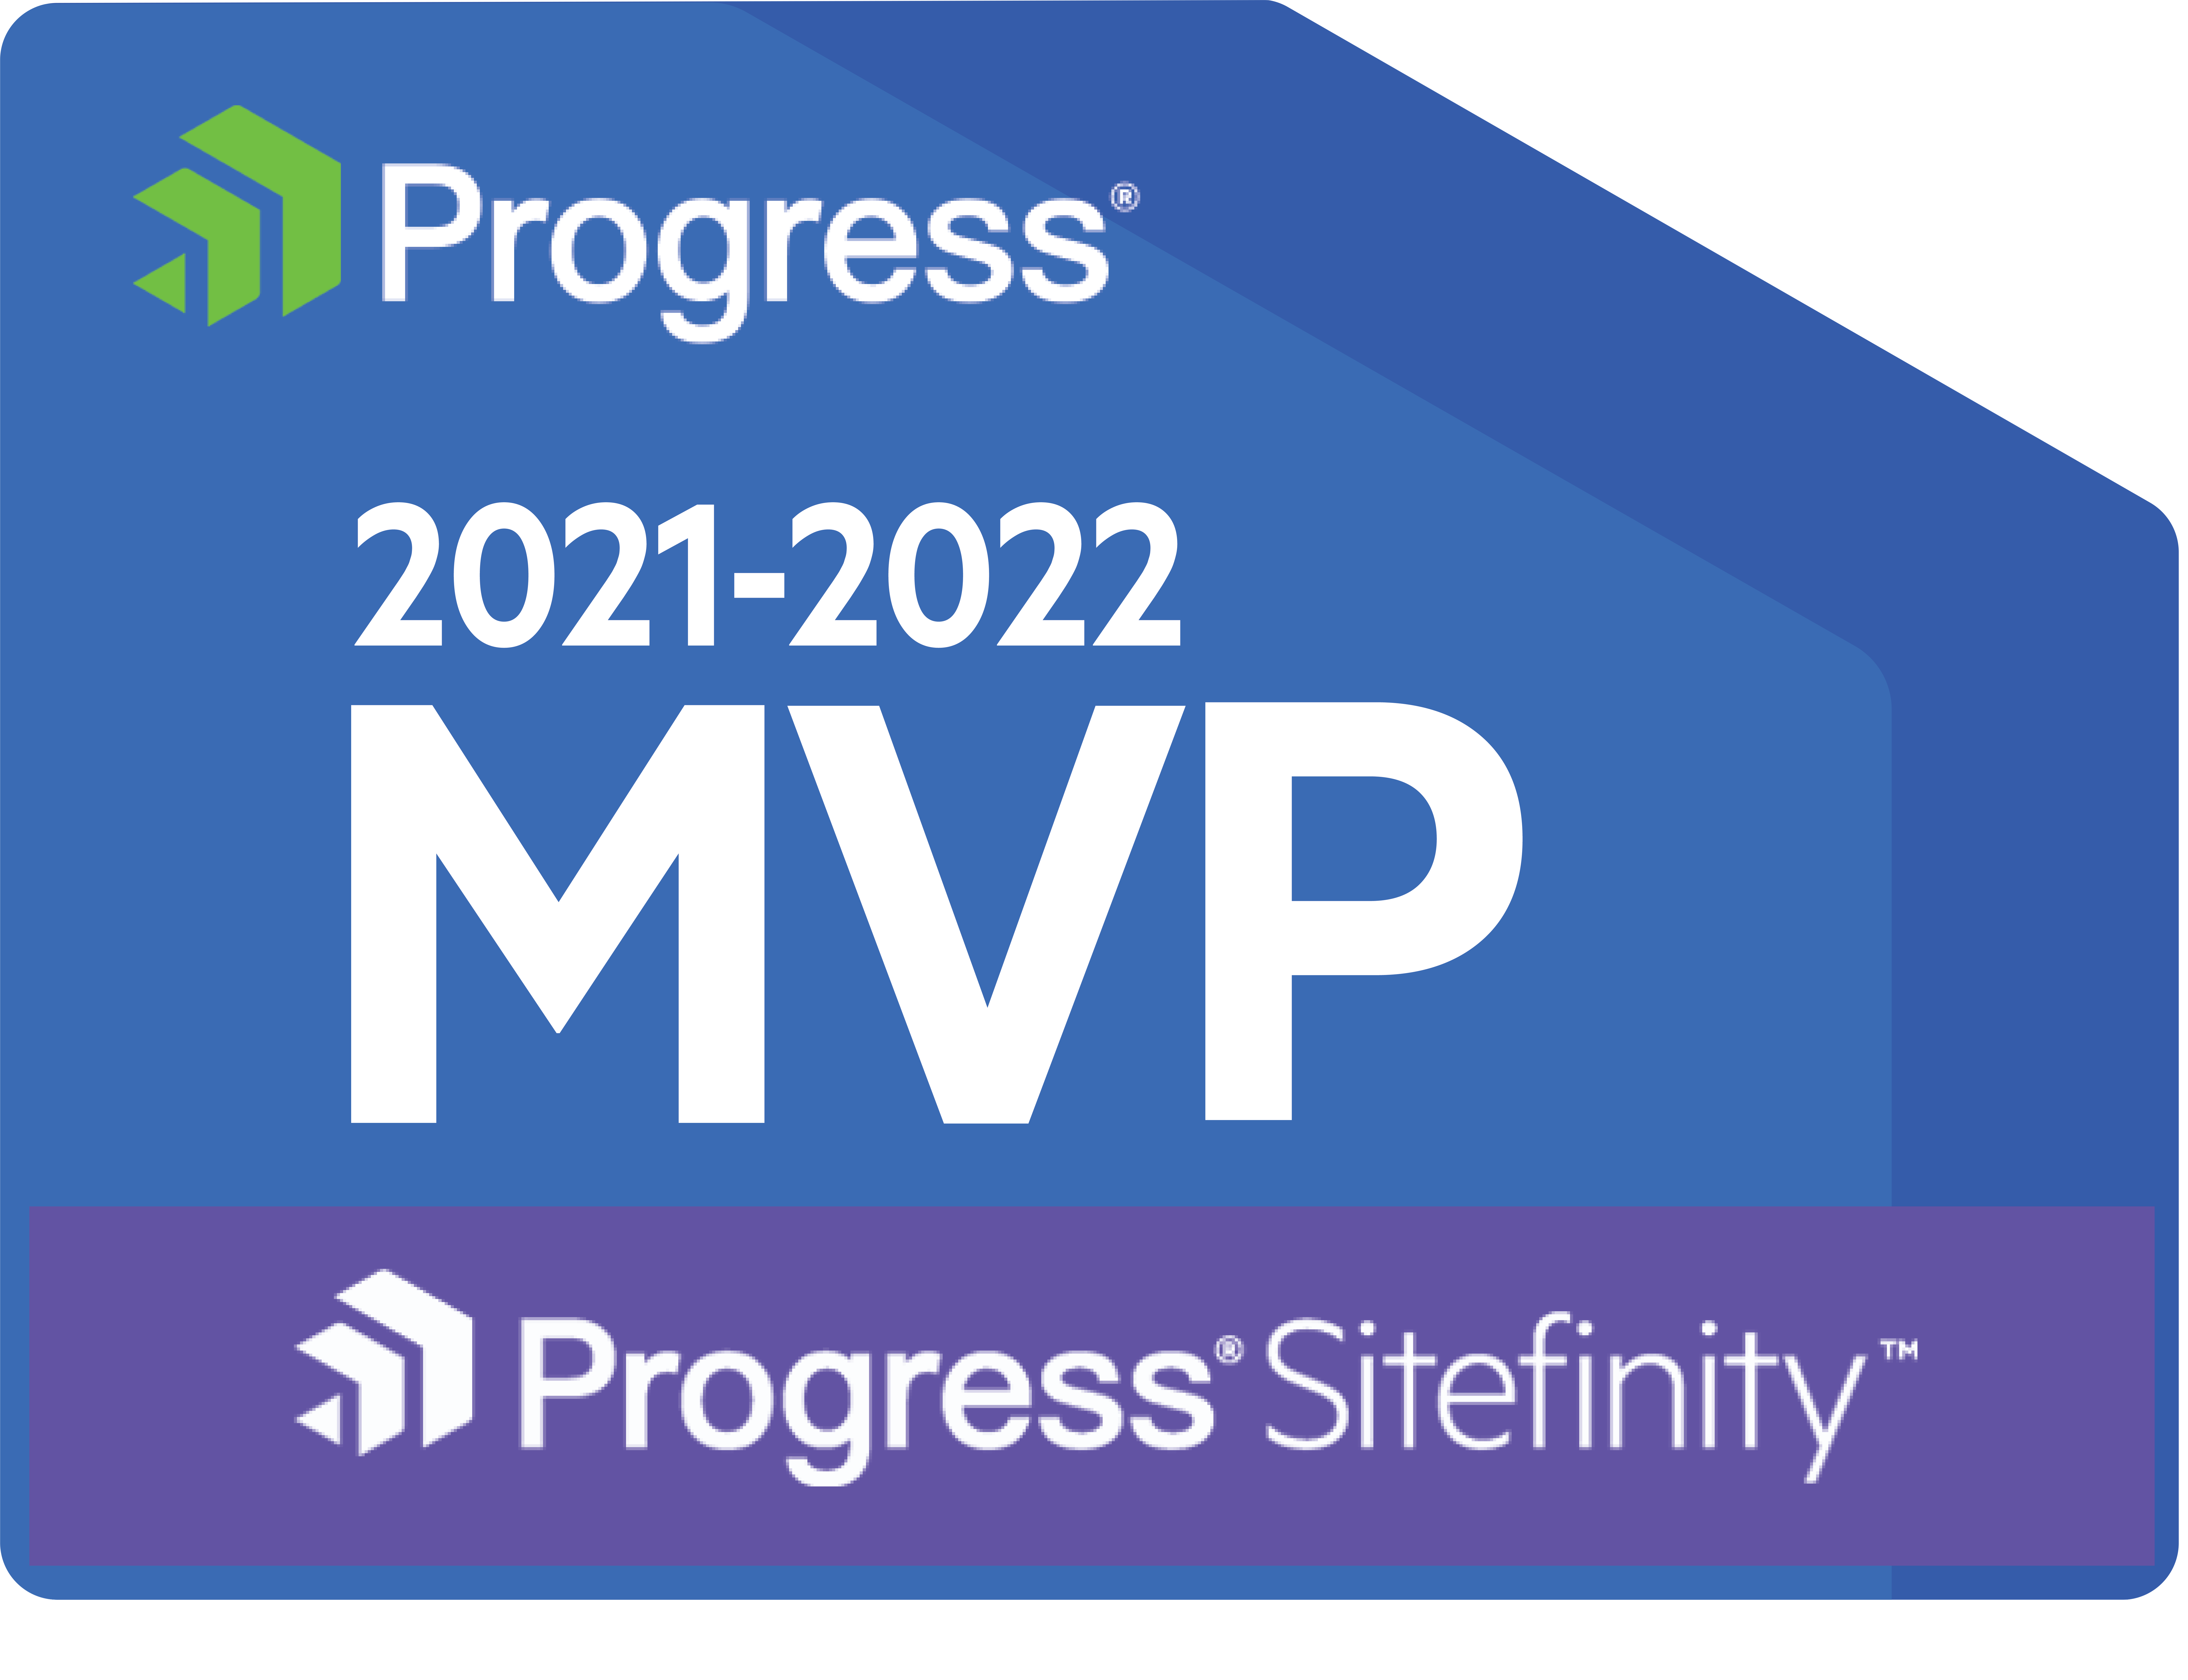 Progress Sitefinity Most Valuable Professional